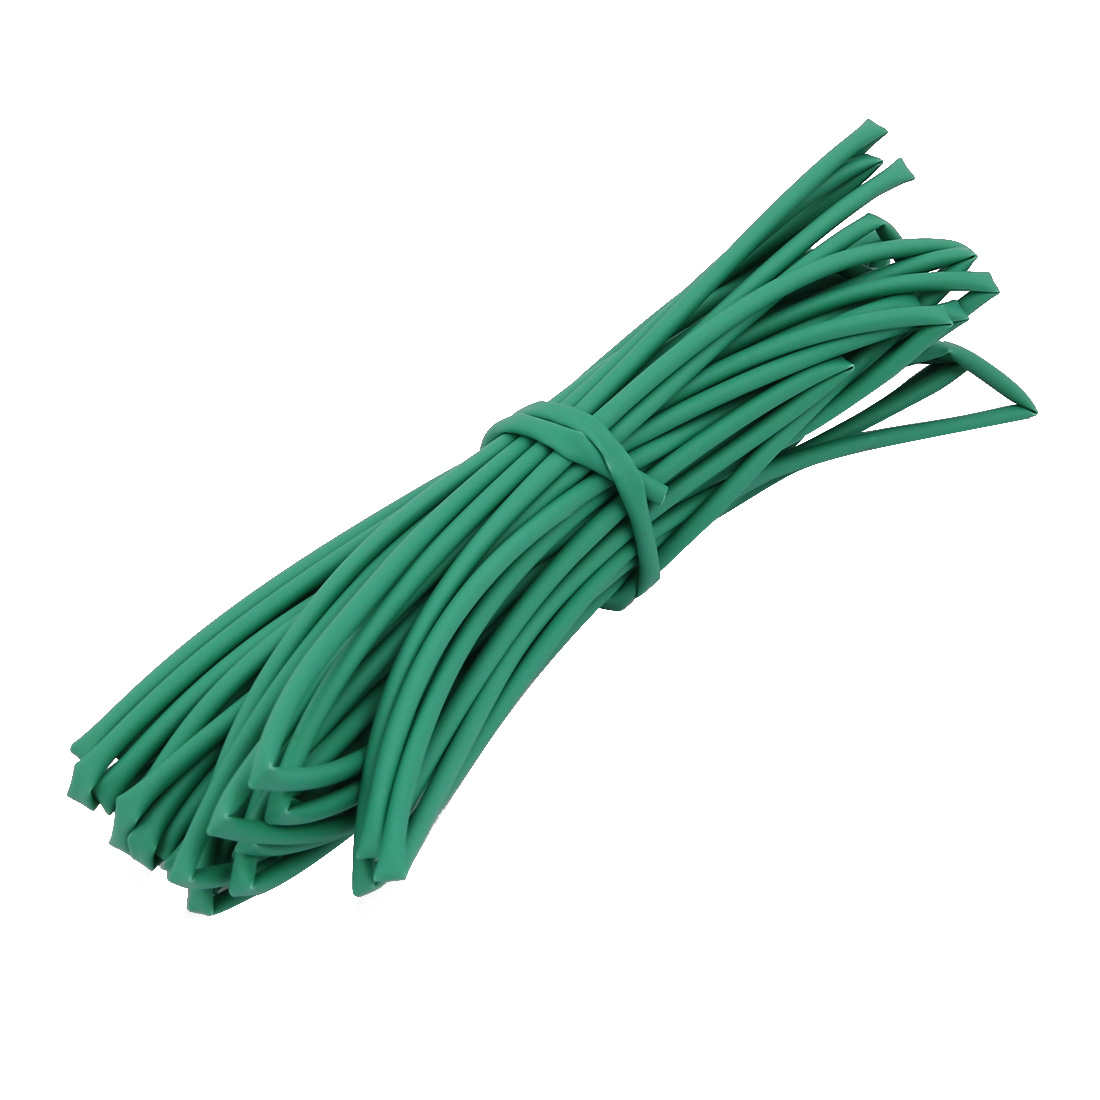 8M 0.06in Inner Dia Polyolefin Flame Retardant Tube Green for Wire Repairing